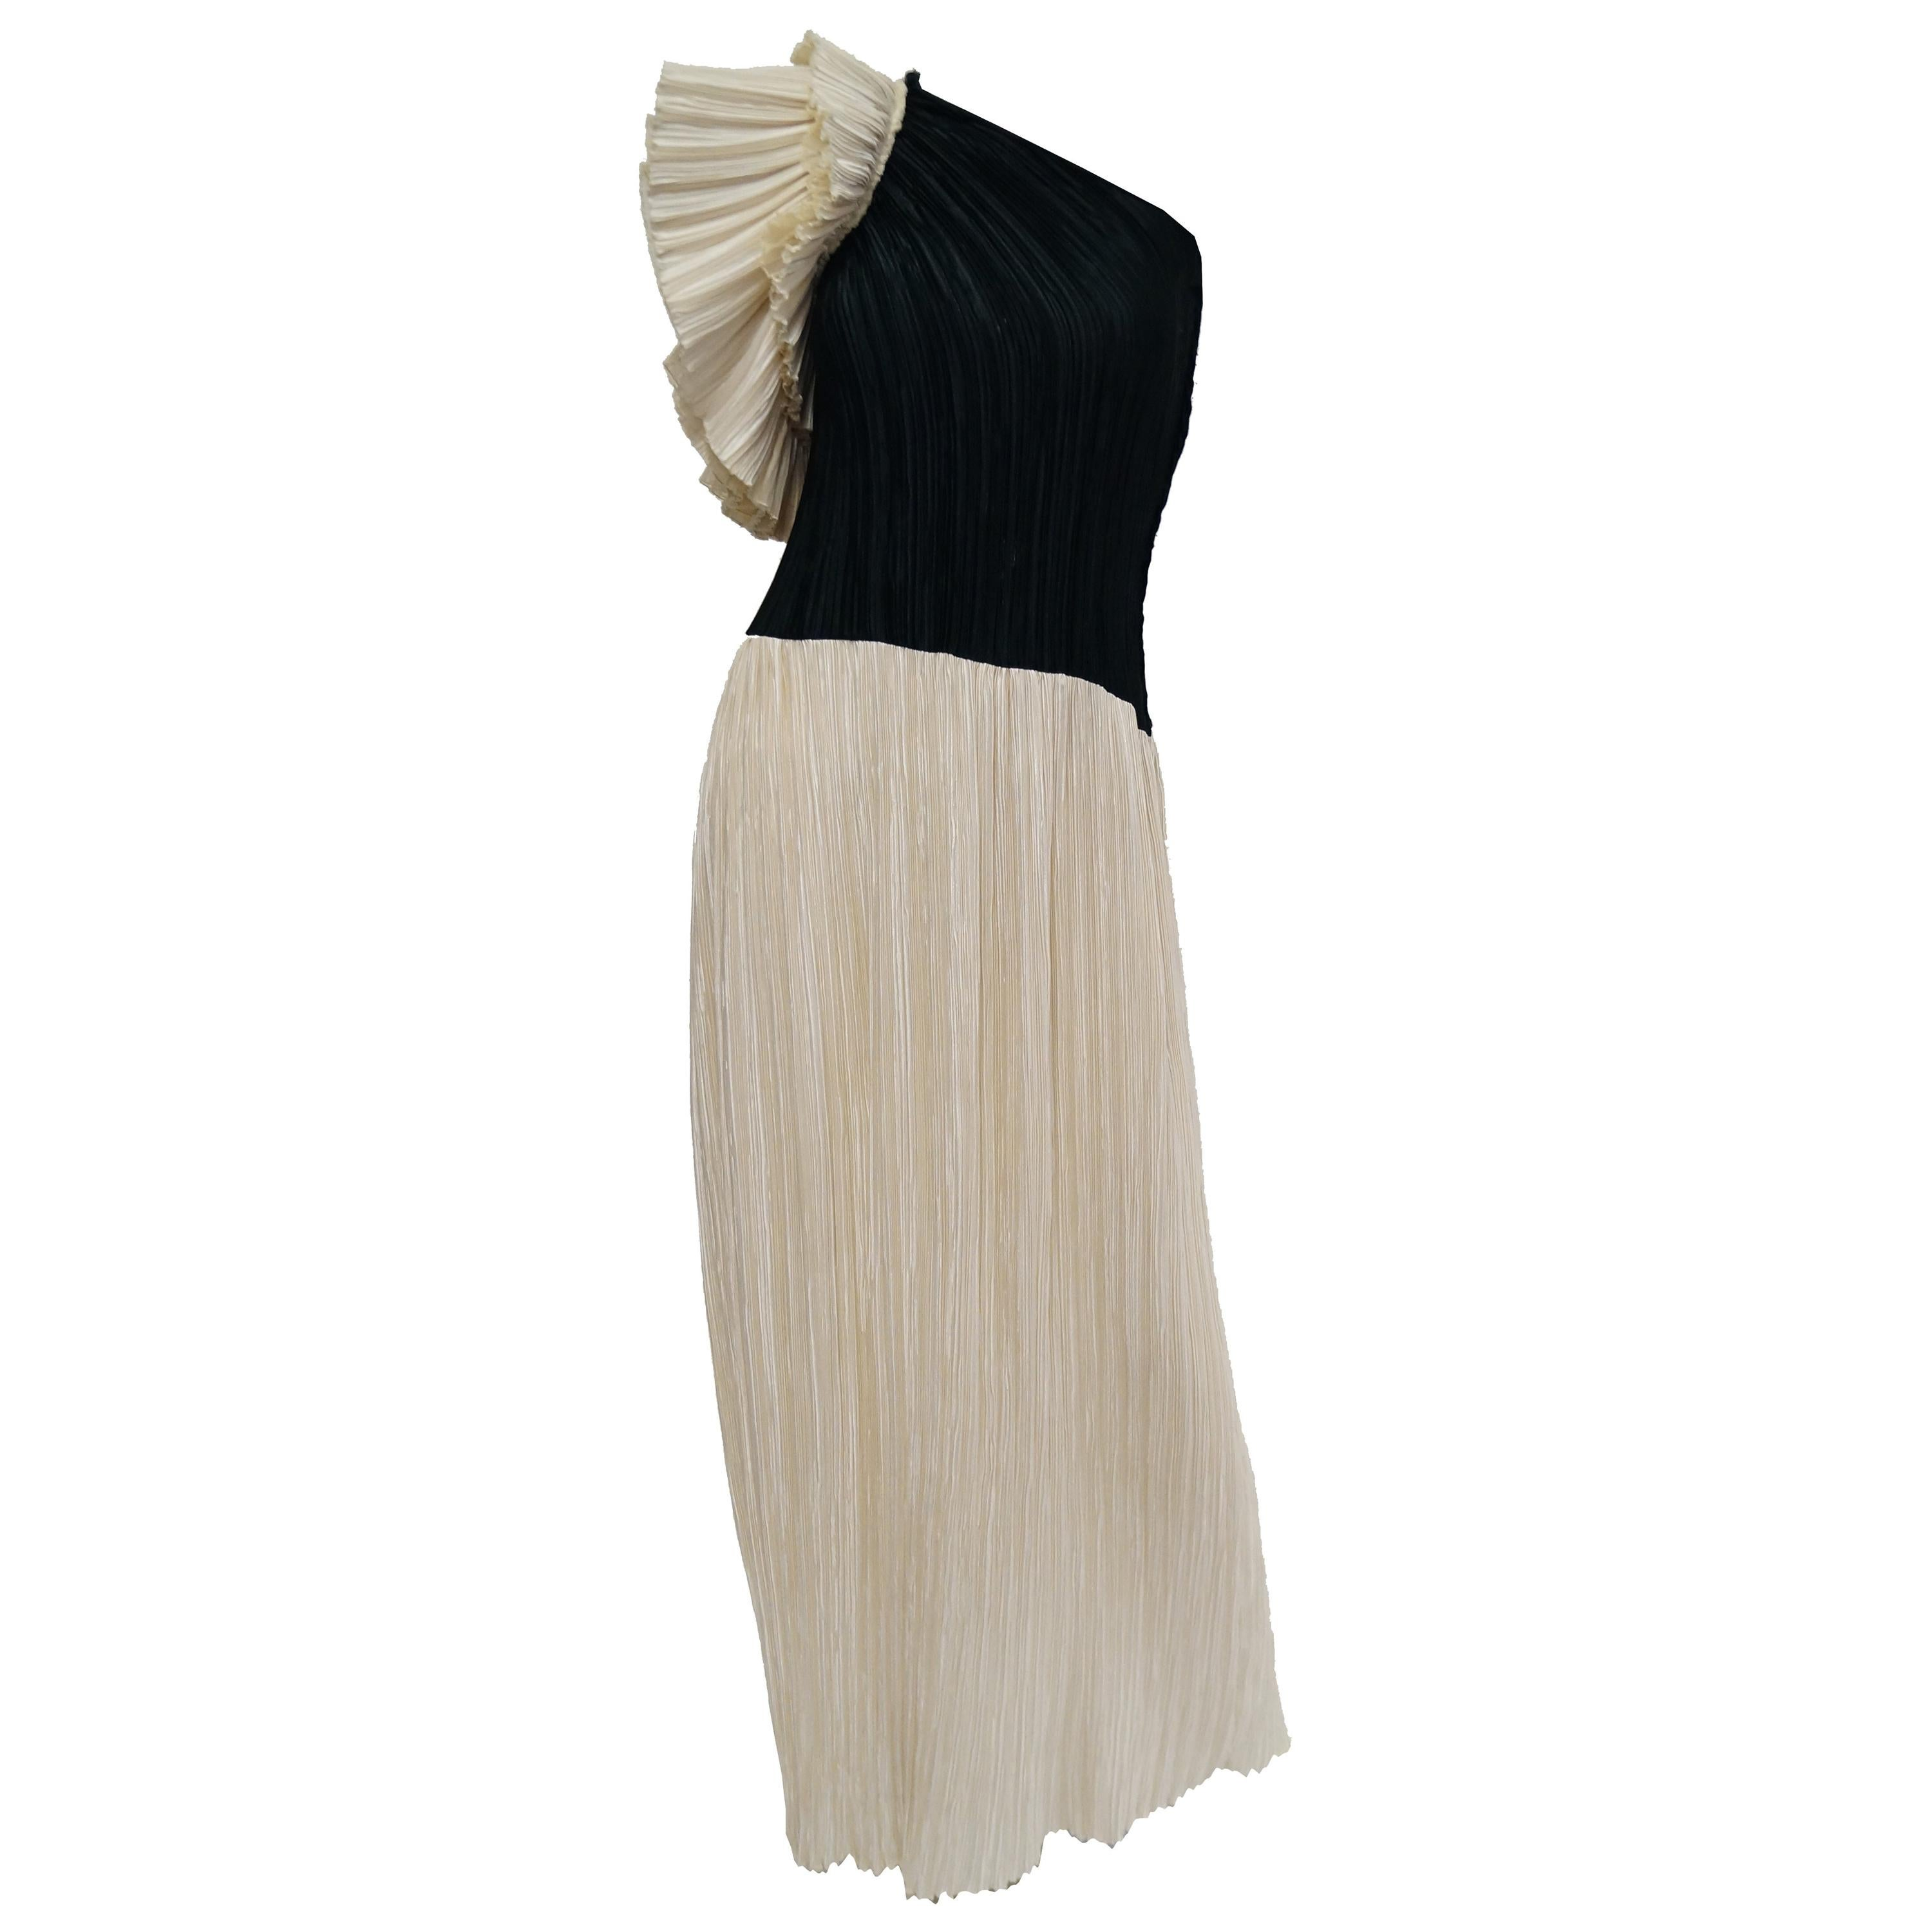 1970s Fortuny Style Off the Shoulder Black and White Pleated Dress